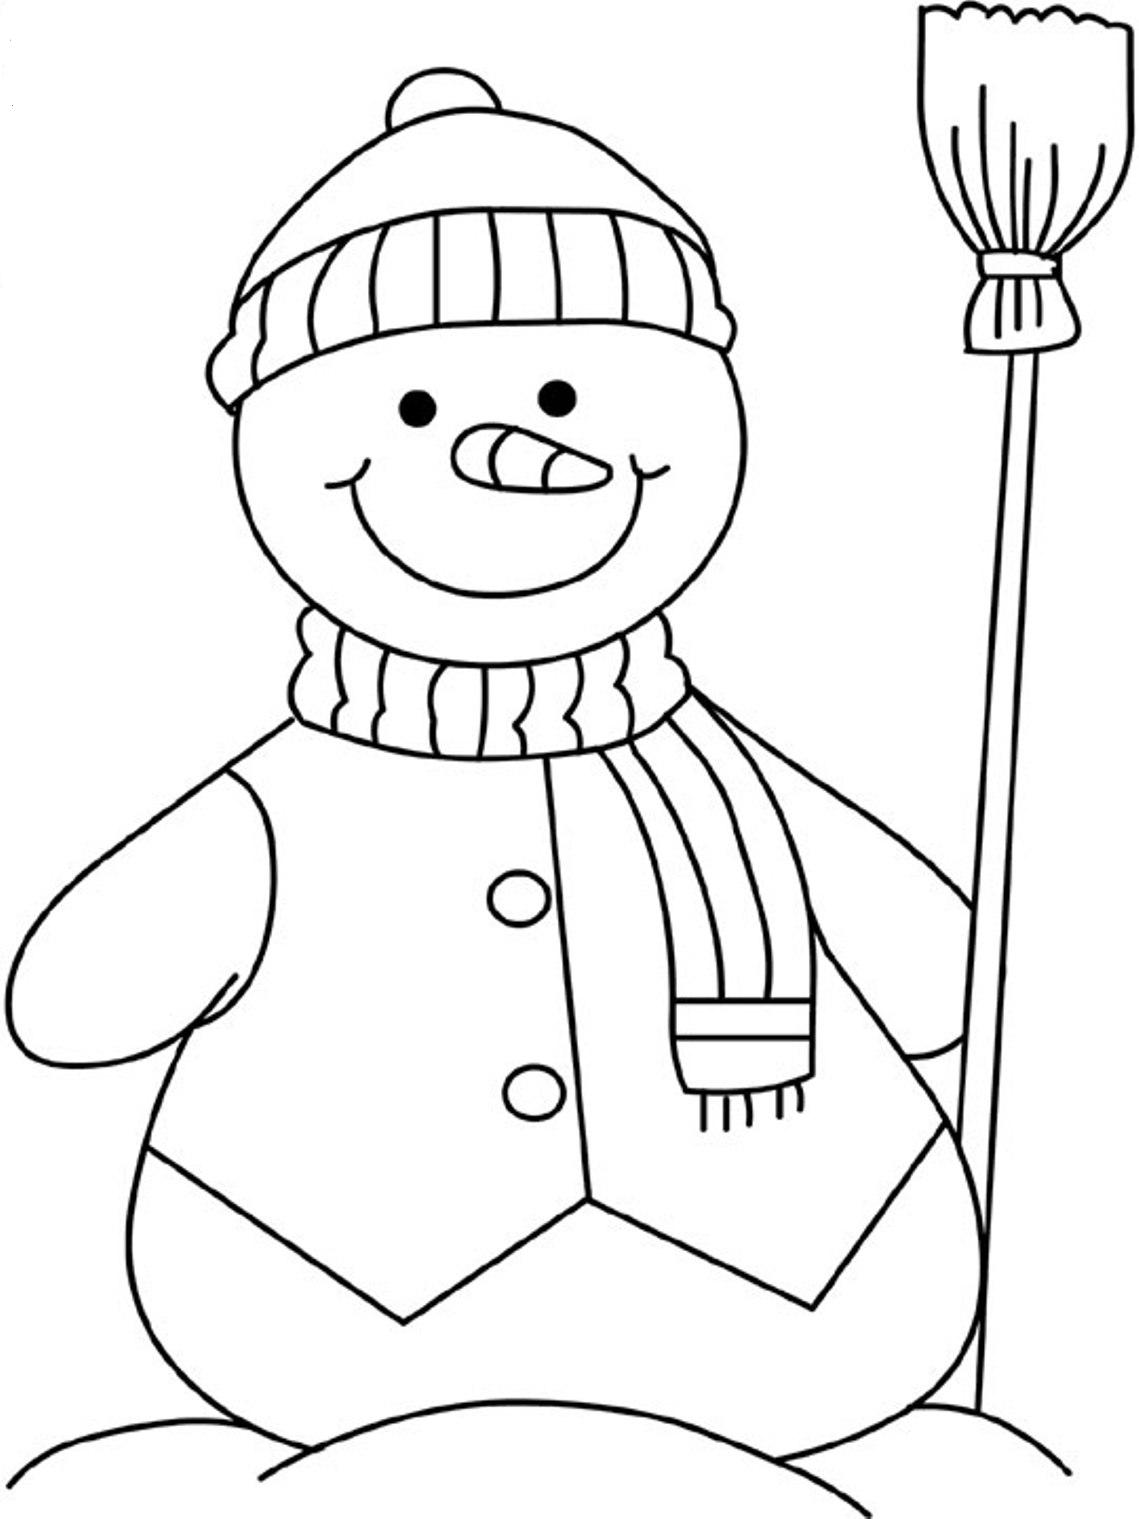 snowmancoloring sheets snowman coloring pages to download and print for free snowmancoloring sheets 1 2